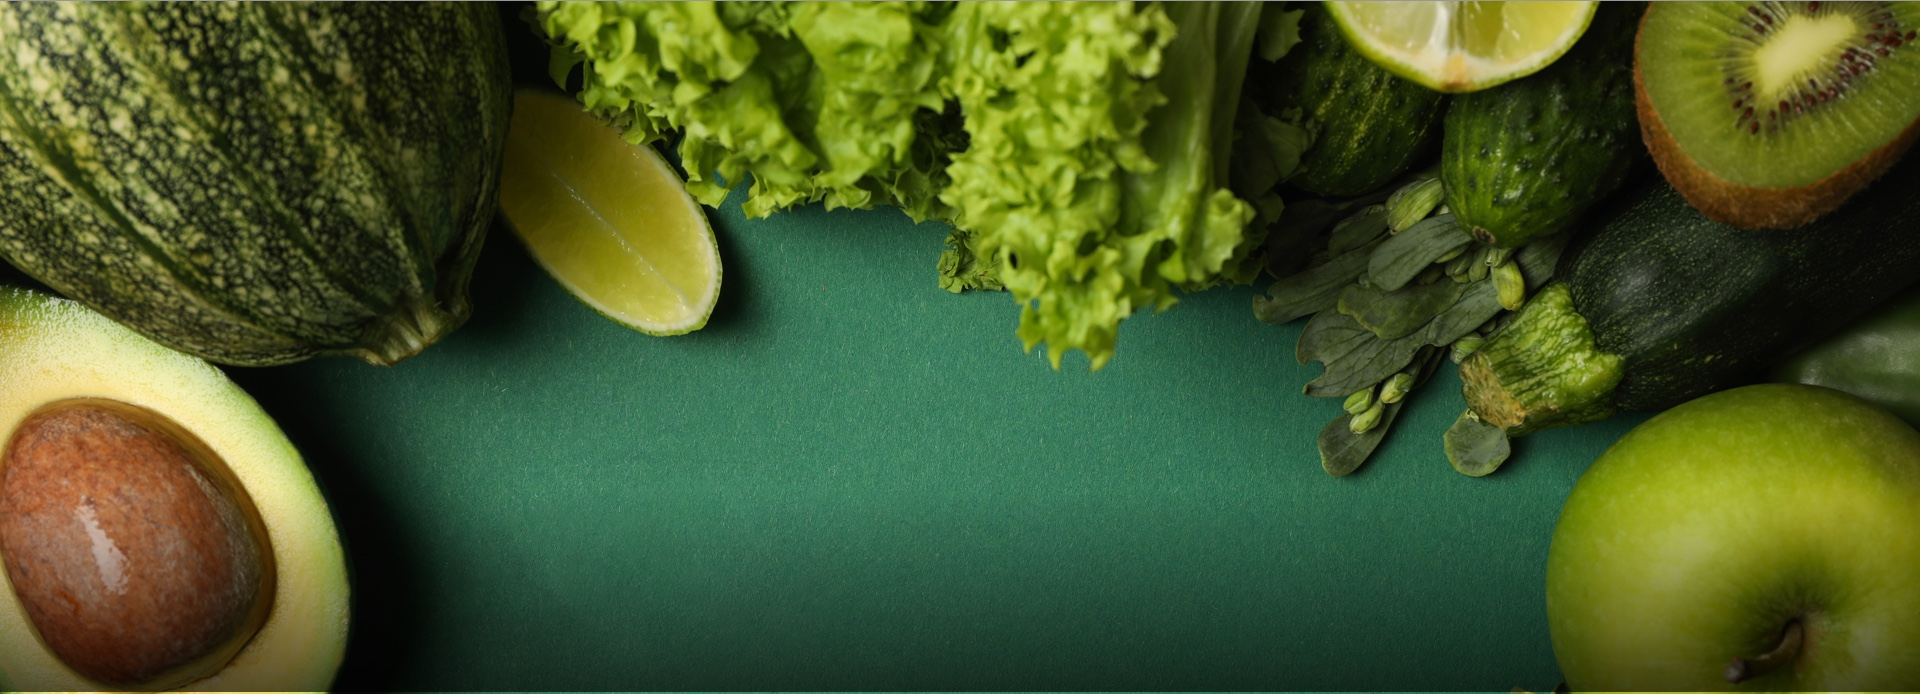 Vitamin K: What is it good for?